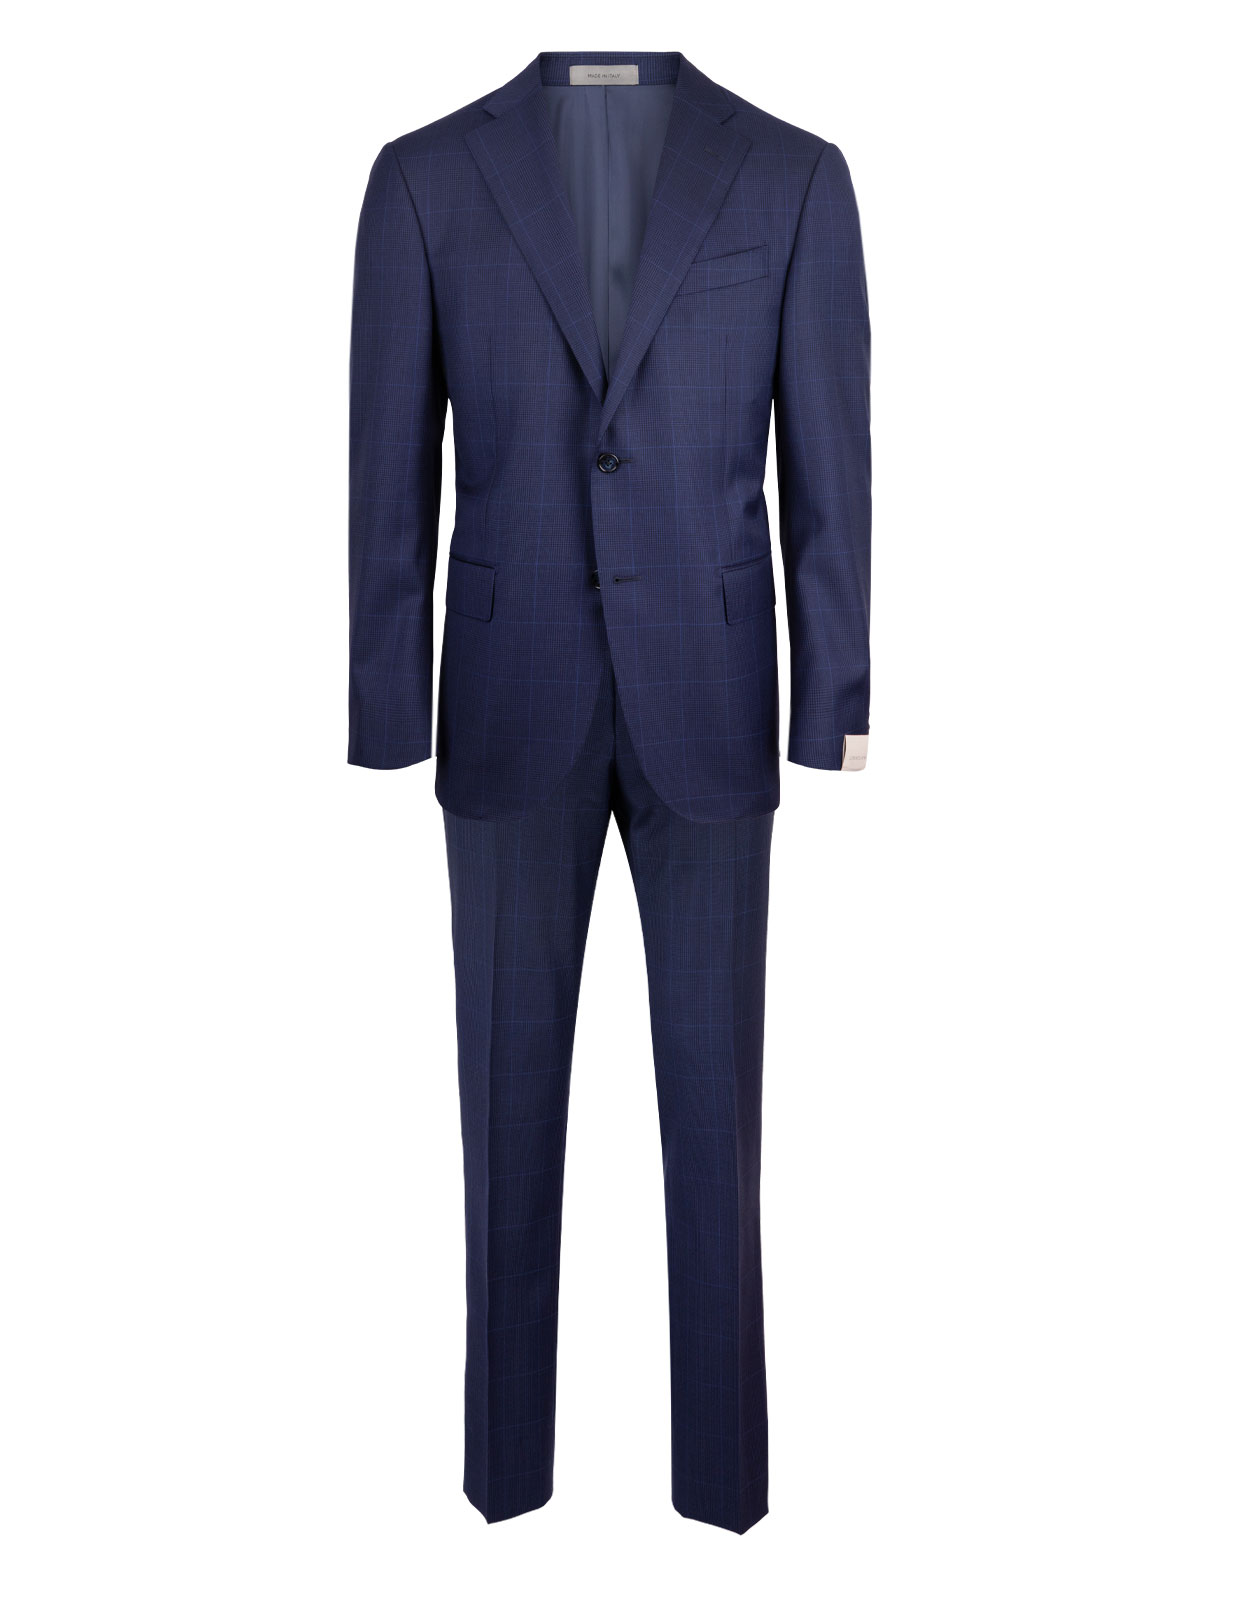 Leader 7268 Wool Suit Blue Check